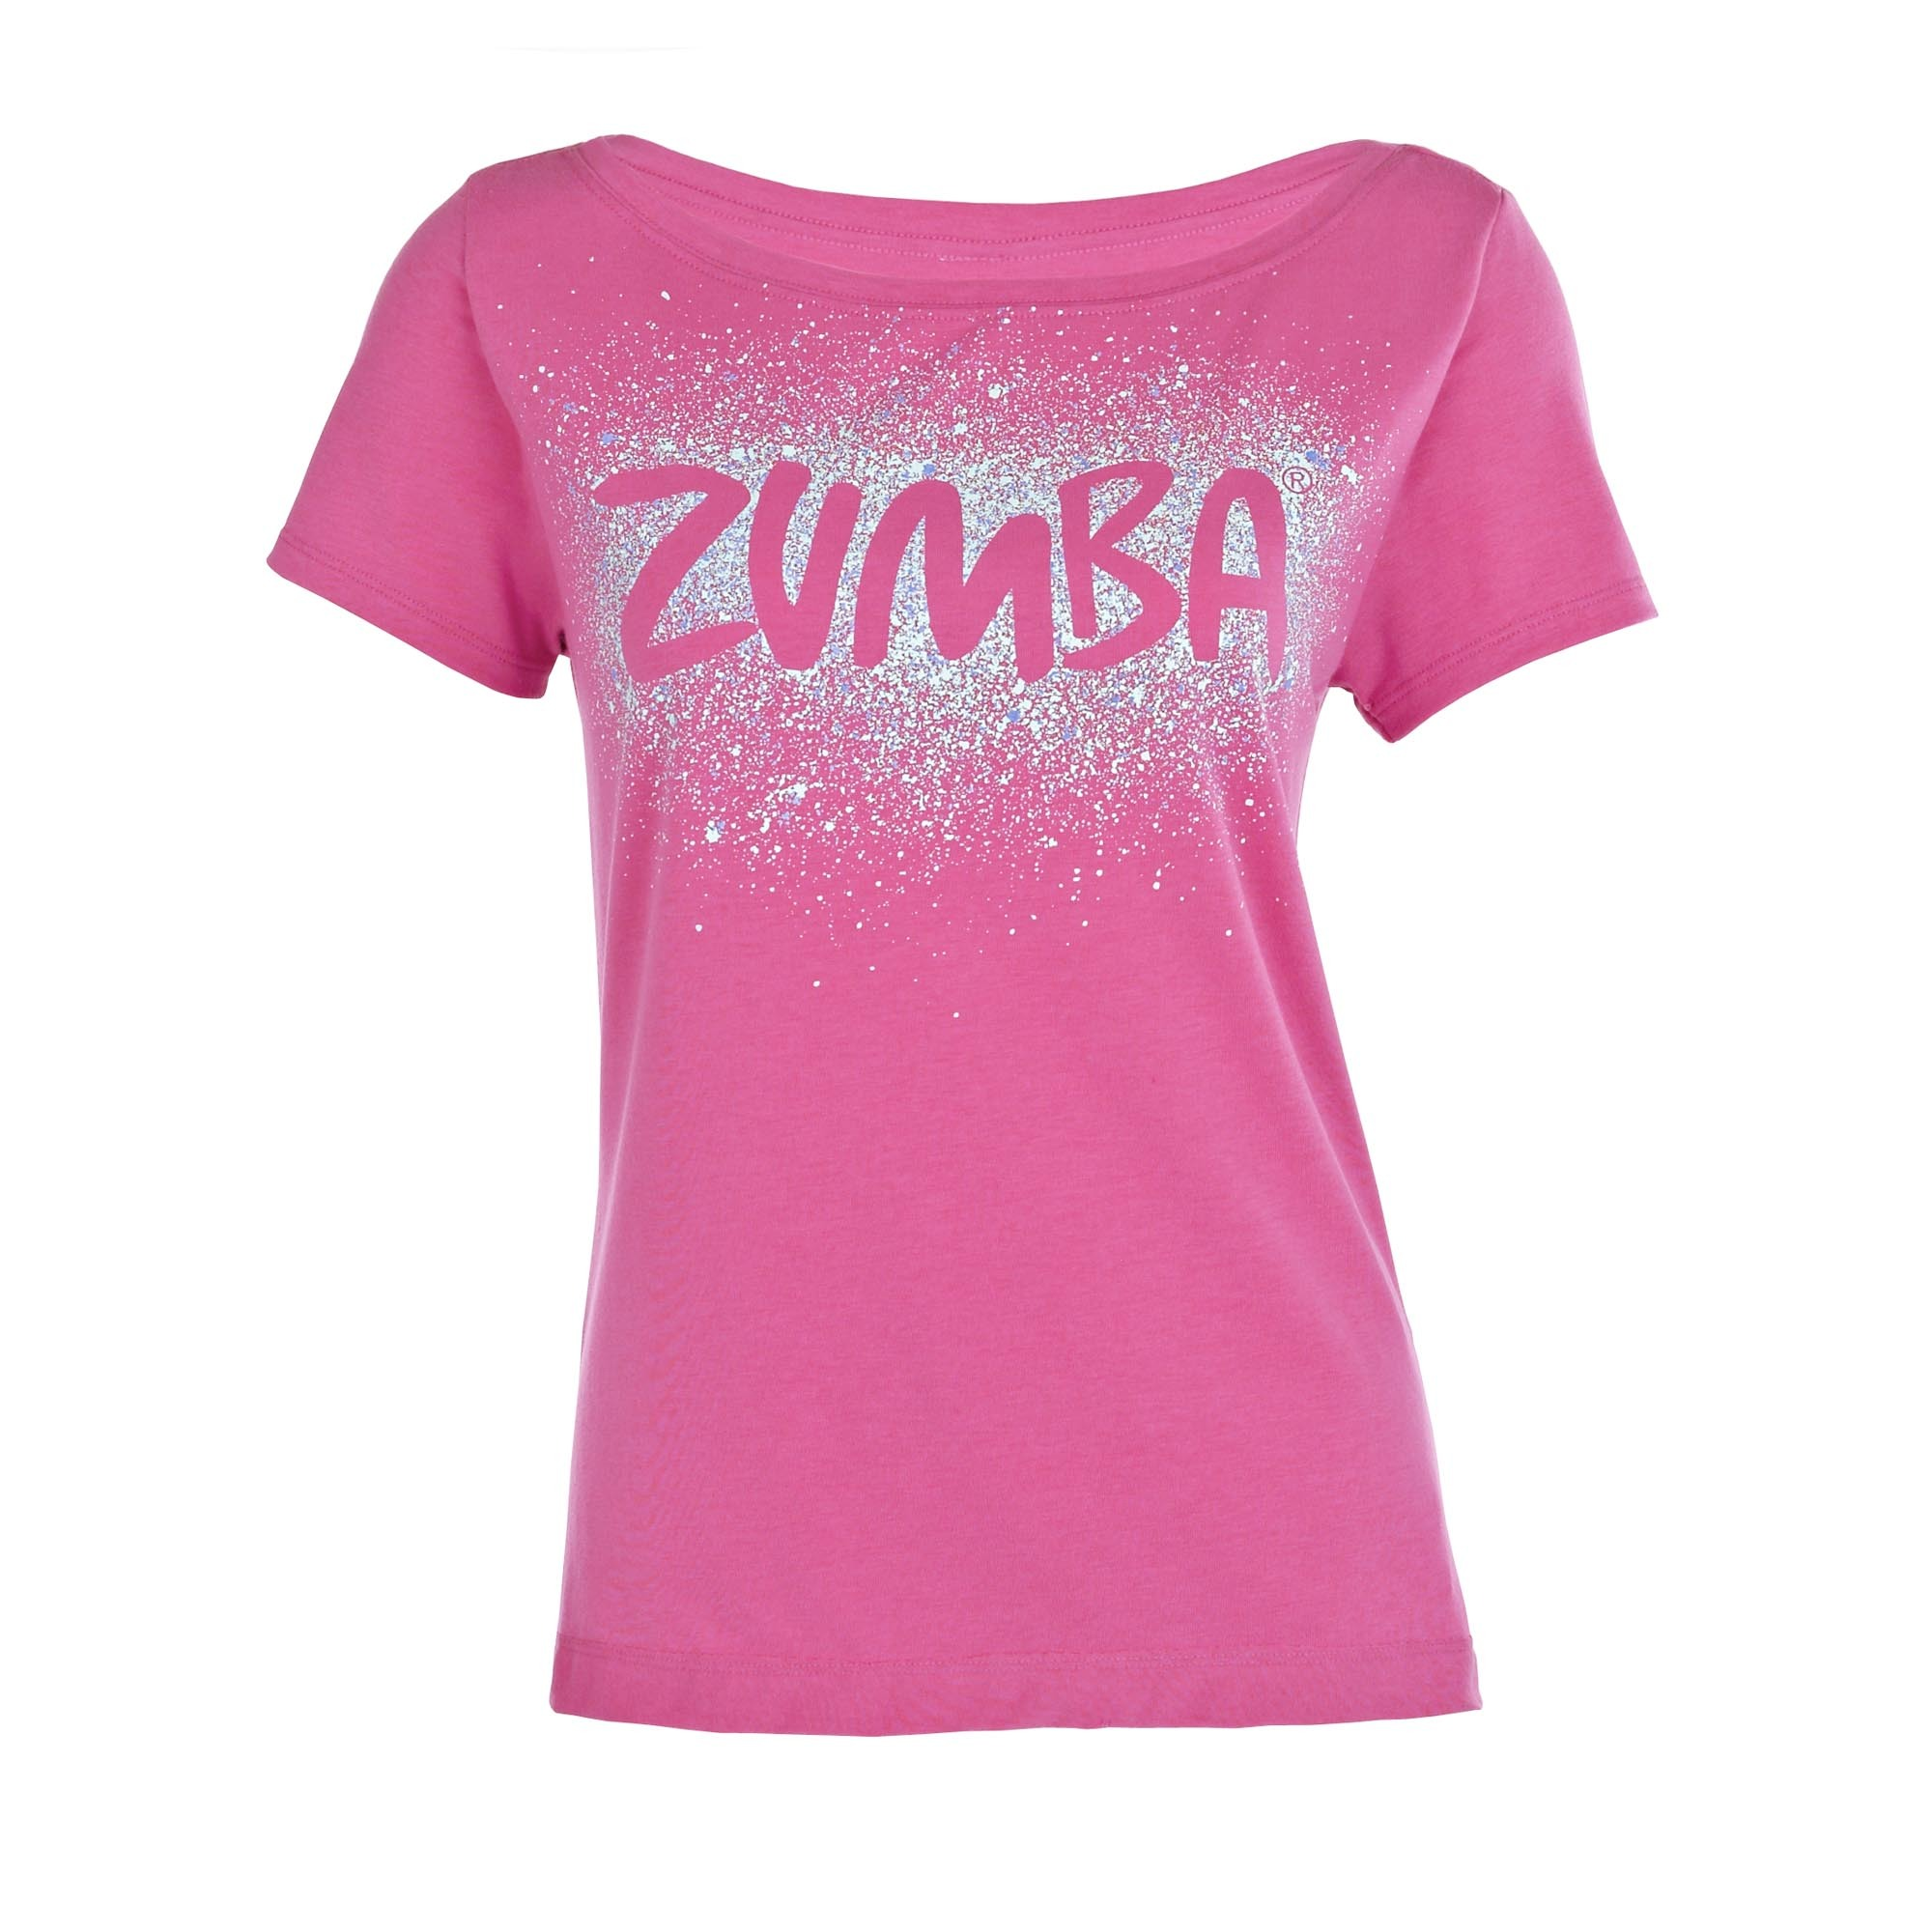 Zumba Cosmic Fancy Top Shirt size XS/S XL/XXL - Berry